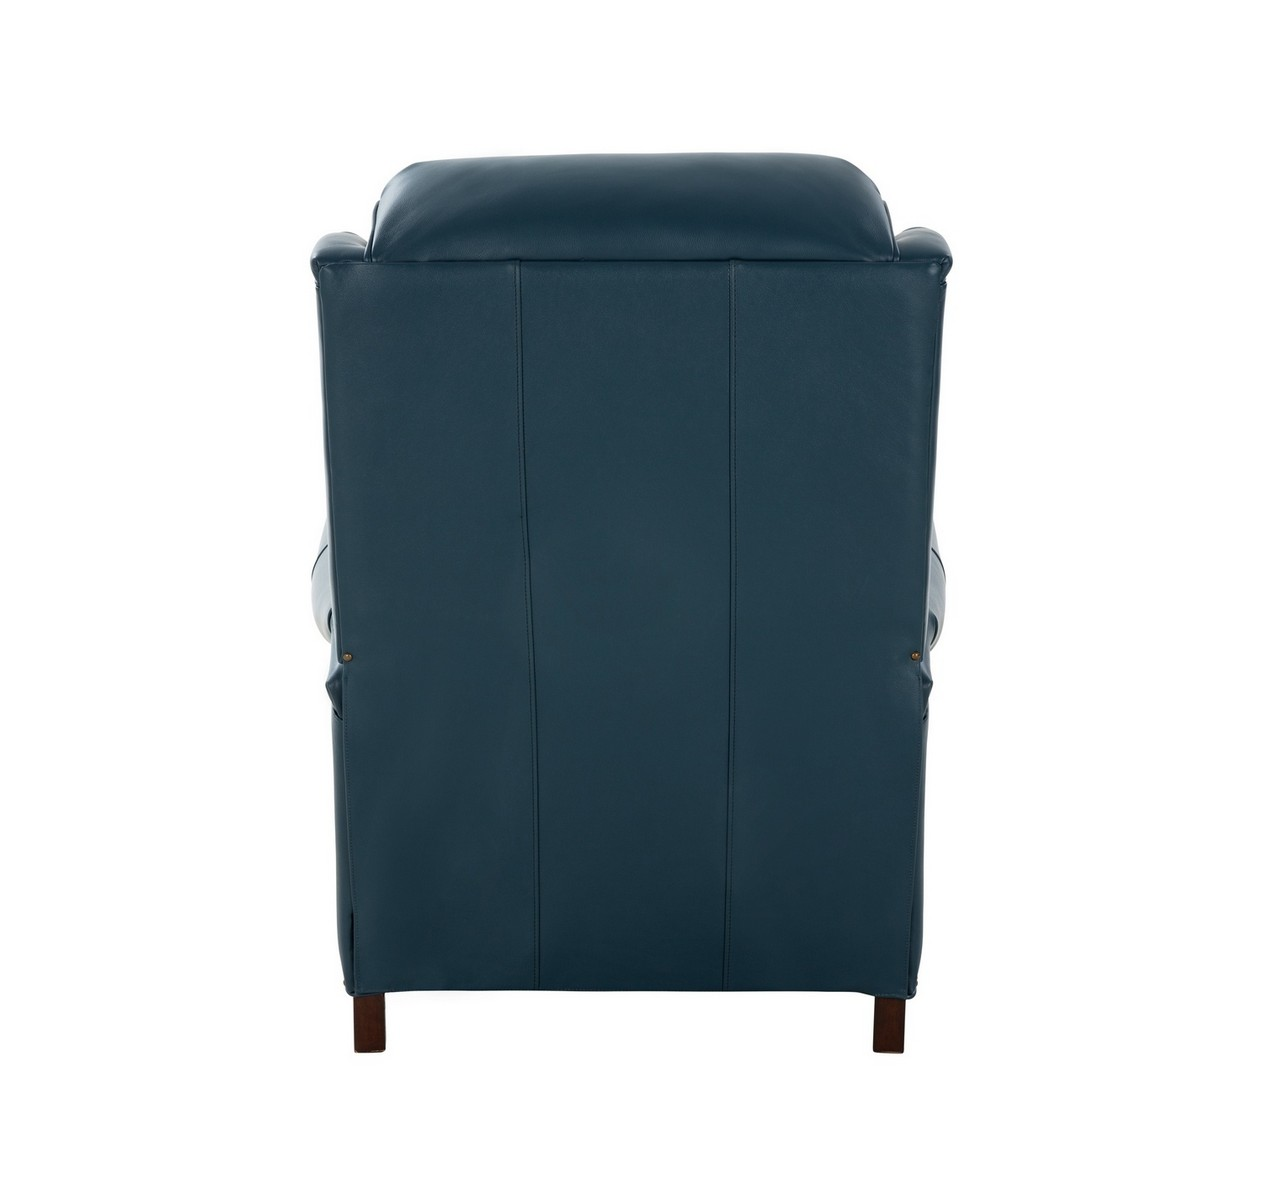 Barcalounger Meade Recliner Chair - Prestin Yale Blue/All Leather